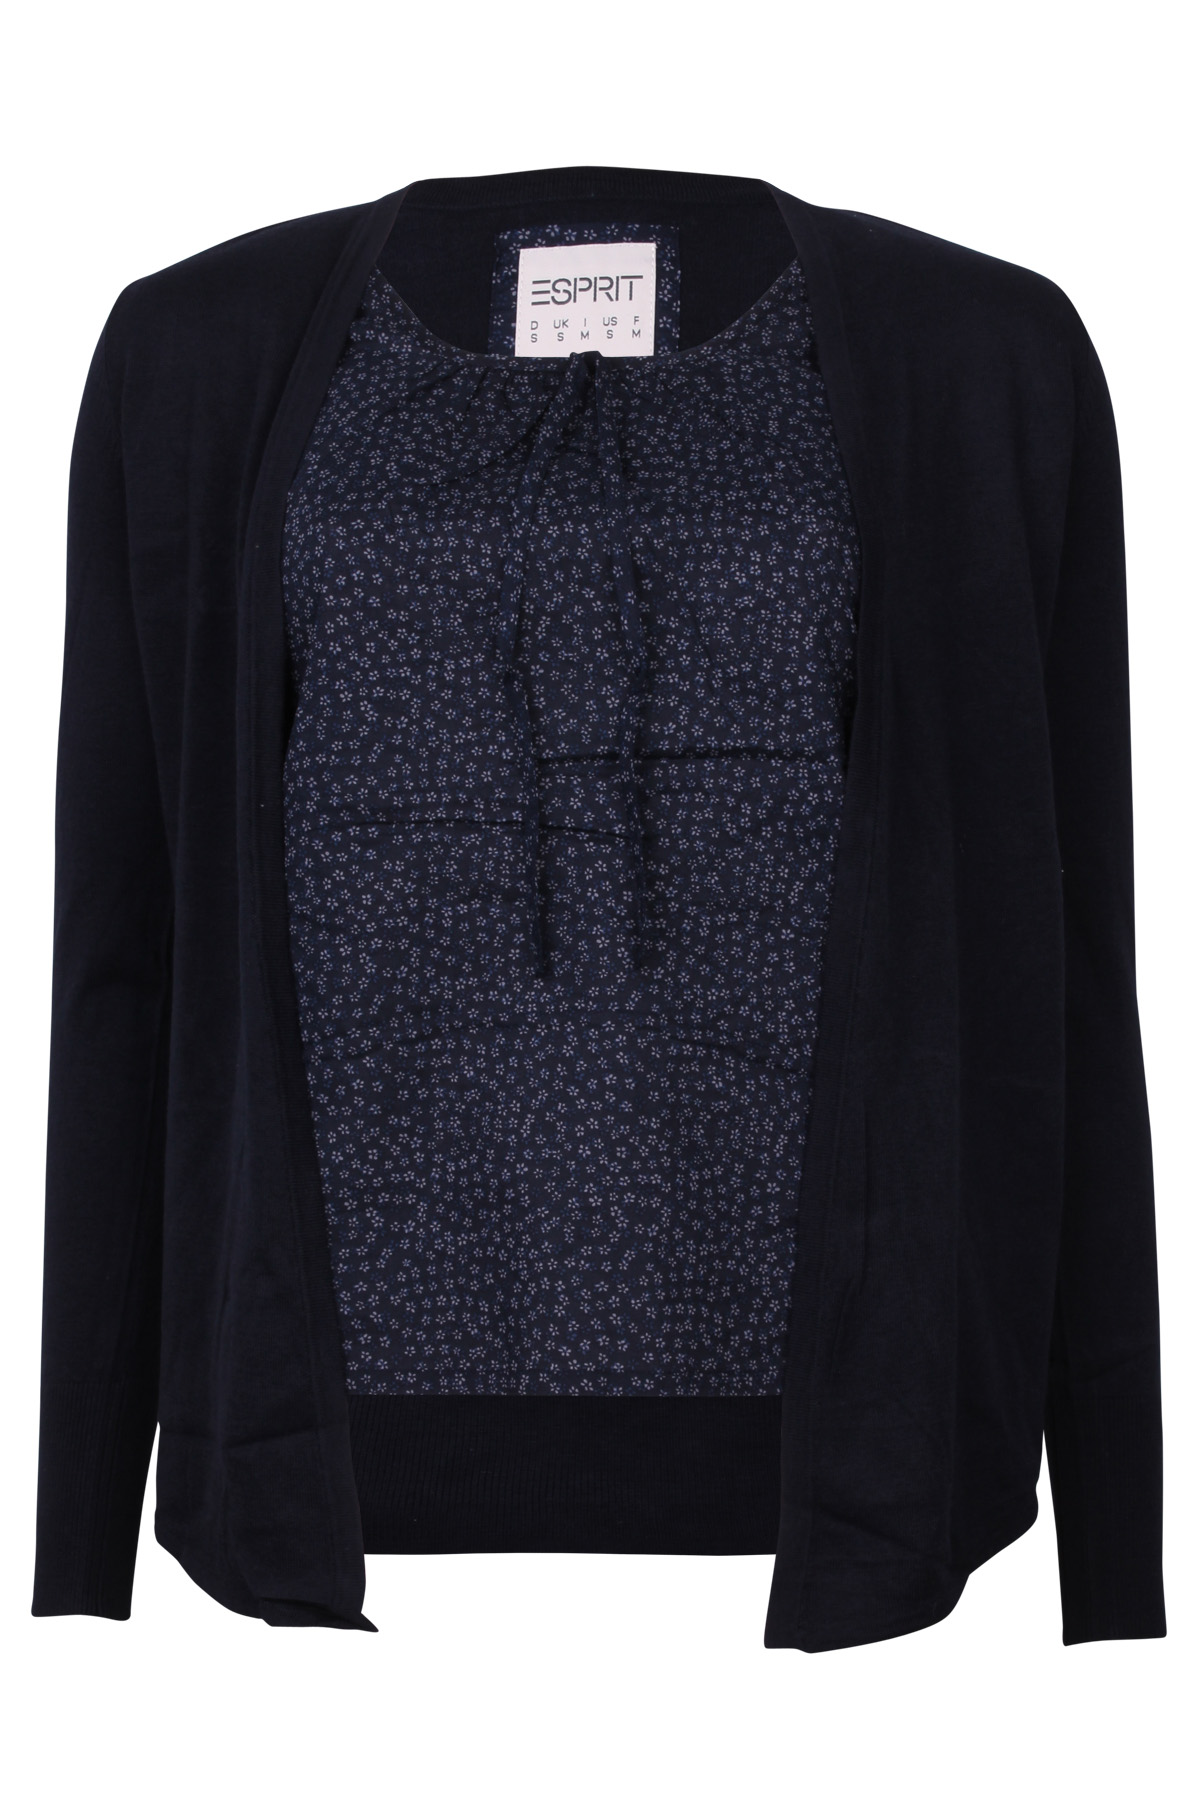 esprit damen cardigan pullover mit stoffeinsatz h21529 navy uvp 59 95 ebay. Black Bedroom Furniture Sets. Home Design Ideas